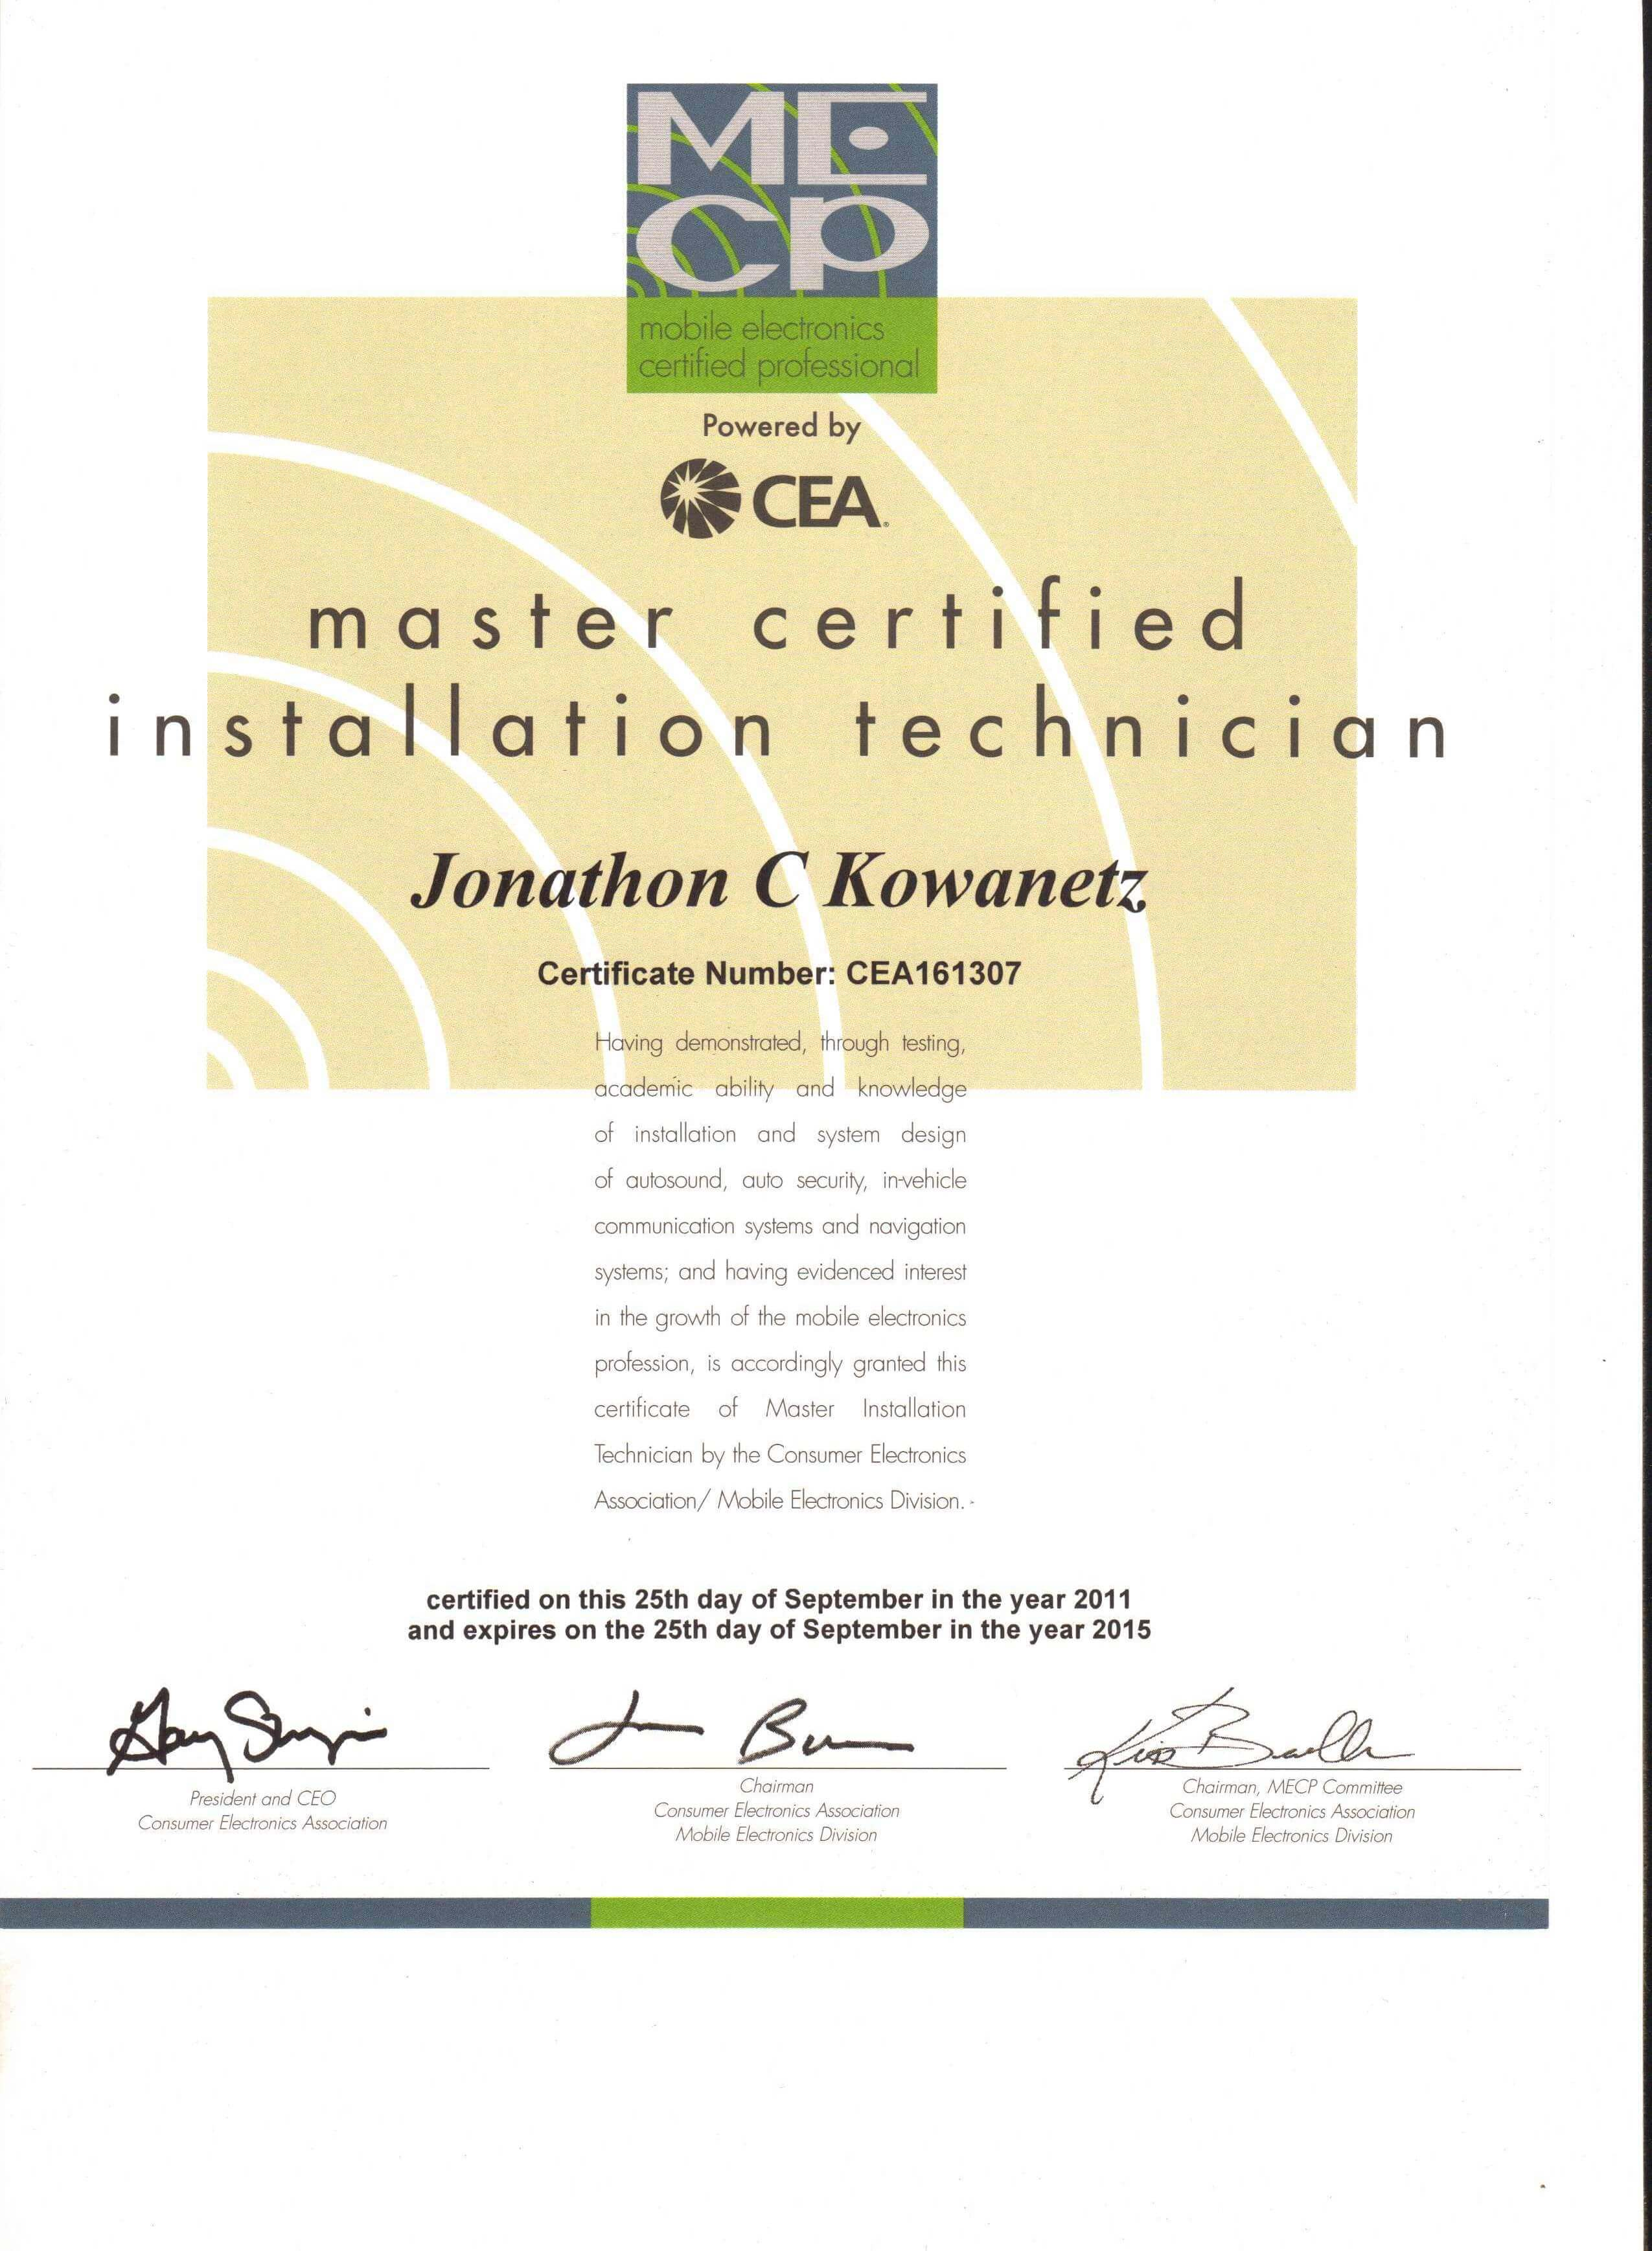 Media awards handcrafted car audio jons certificate for renewing his master certification in 2011 xflitez Choice Image